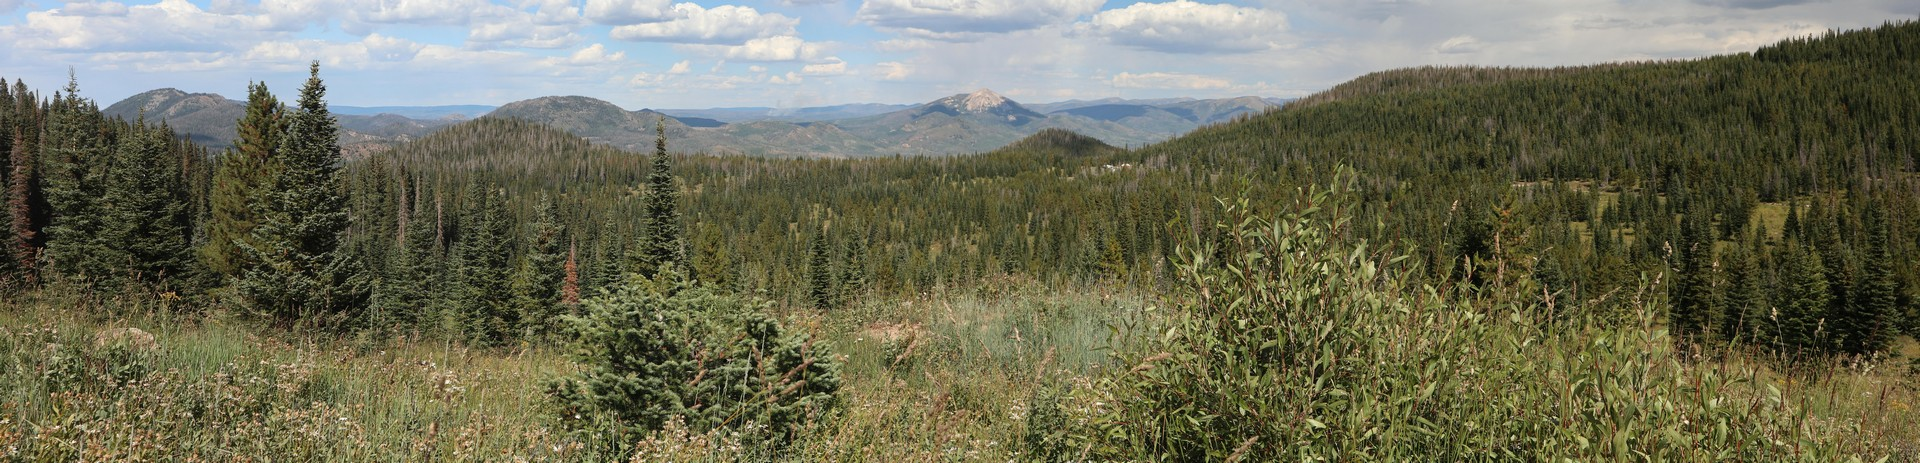 2017-08-26 Brush Mtn Lodge_Steamboat Springs-44_stitch